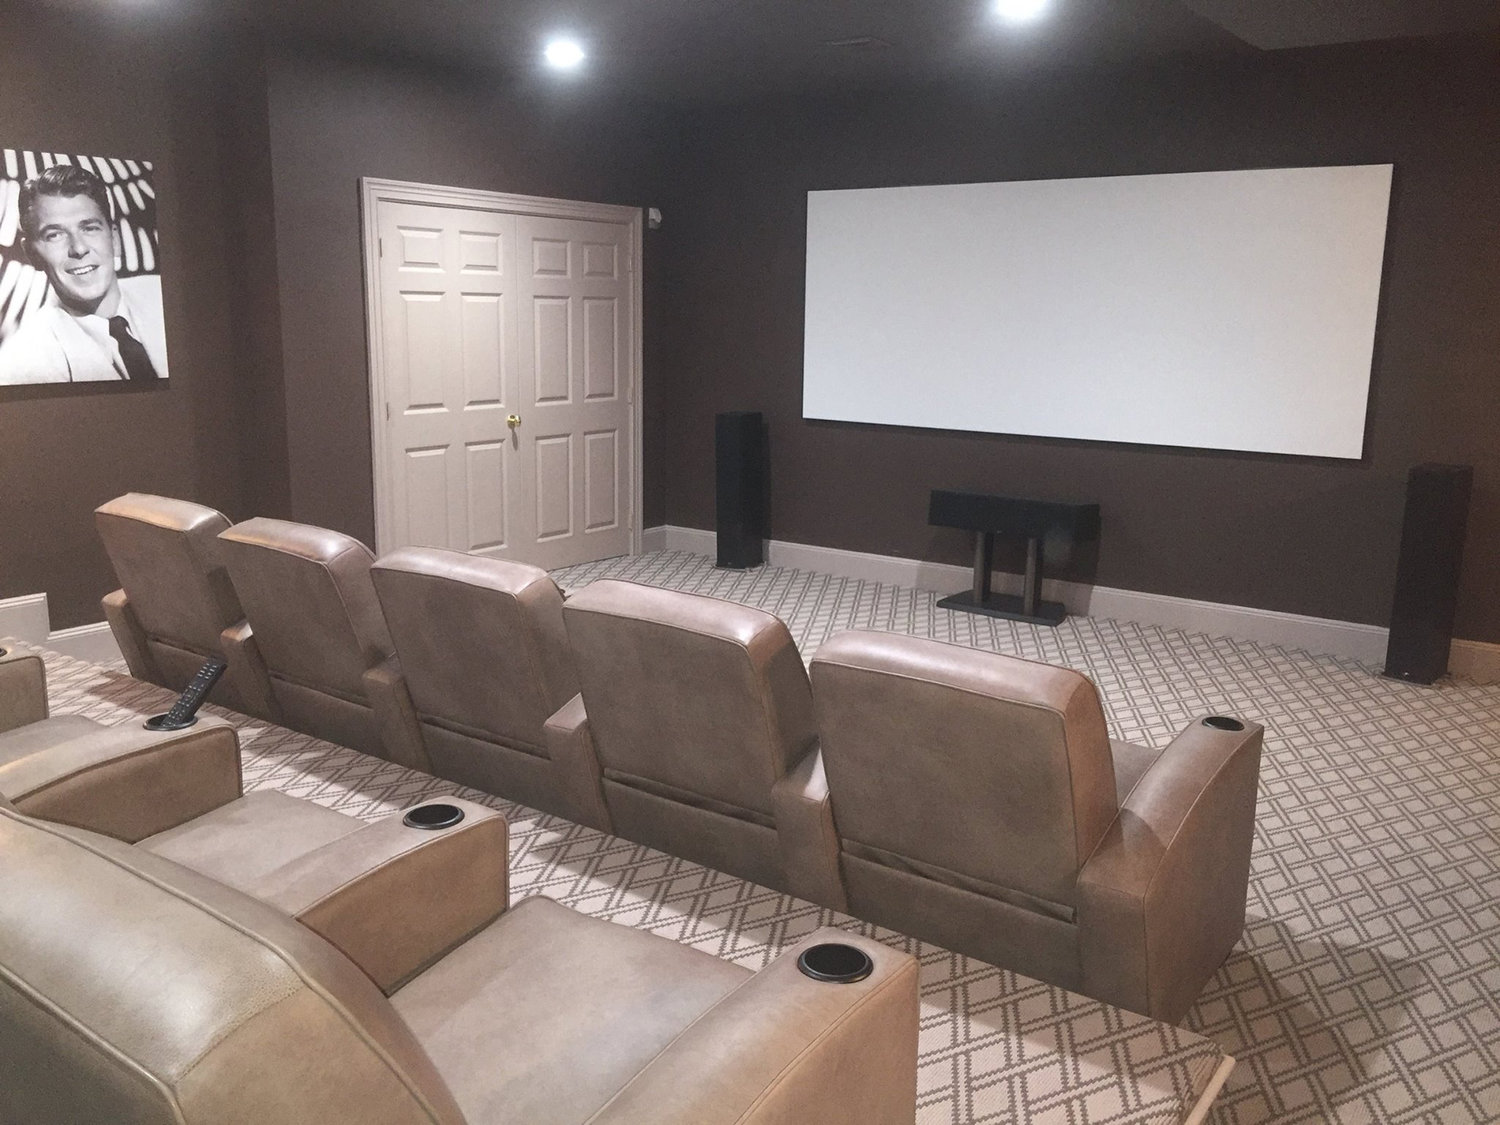 Seaford's Sights N Sounds specializes in audio-visual installations, and works alongside interior designers to renovate spaces like this theater in Southampton.